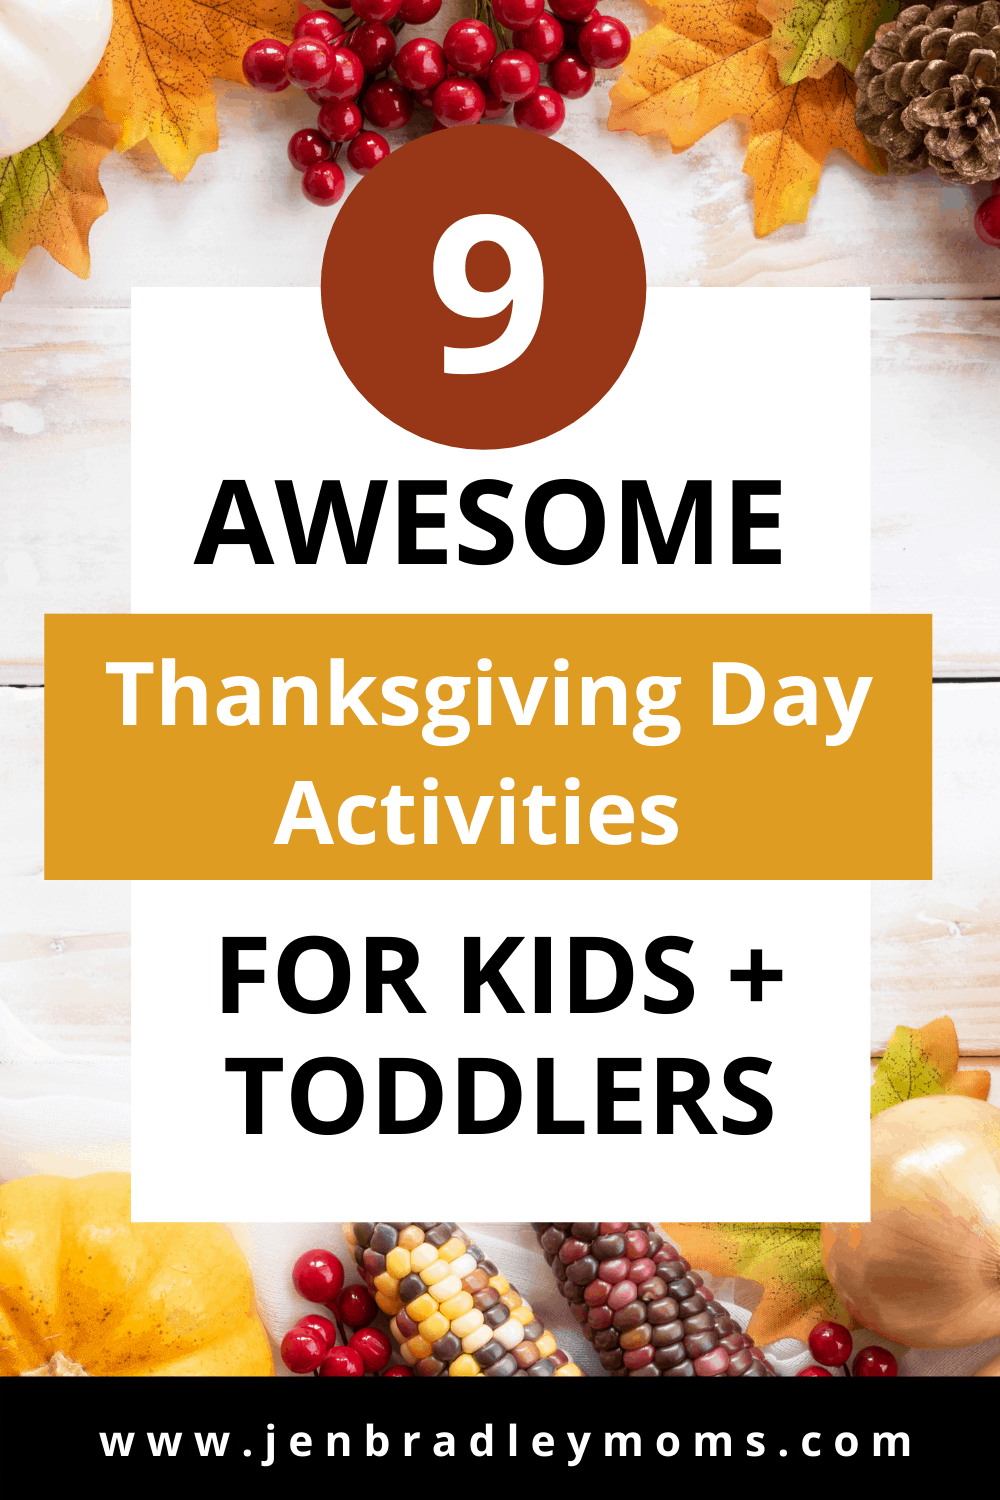 9 Awesome Thanksgiving Day Activities for Kids and Toddlers